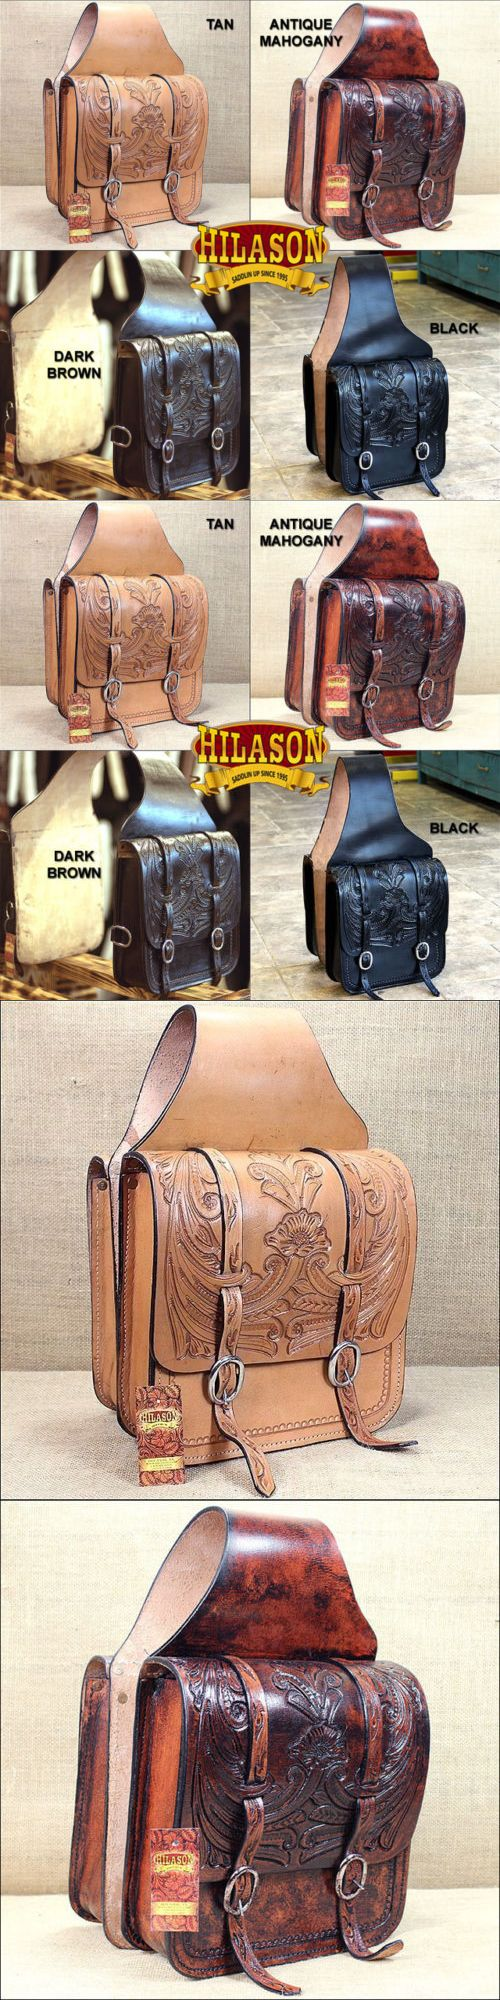 Saddle Bags 47300: Hilason Western Leather Cowboy Trail Ride Horse Saddle Bag 12 X 11 X 3.5 Inch -> BUY IT NOW ONLY: $164.95 on eBay!